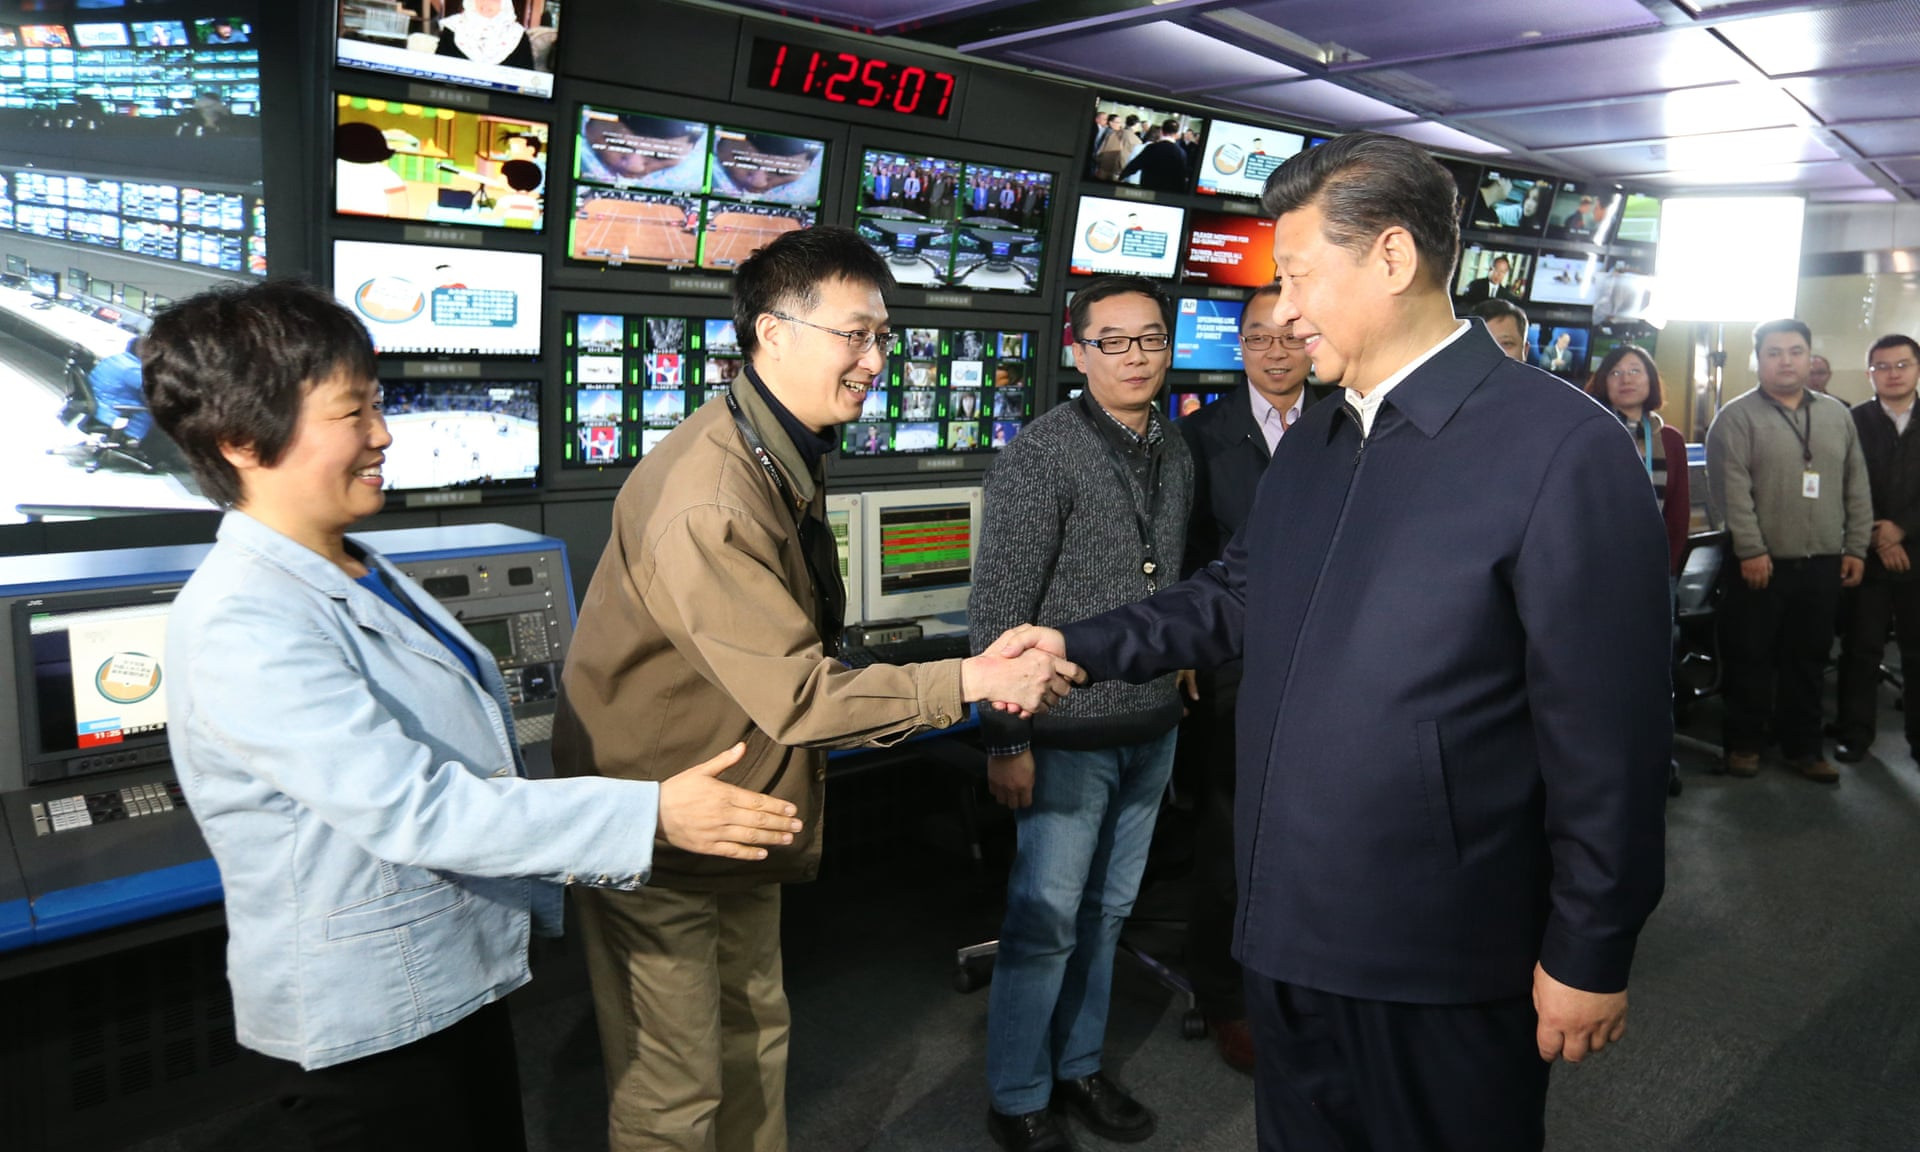 President Xi emphasizes Chinese journalists' duty to promote party ideas